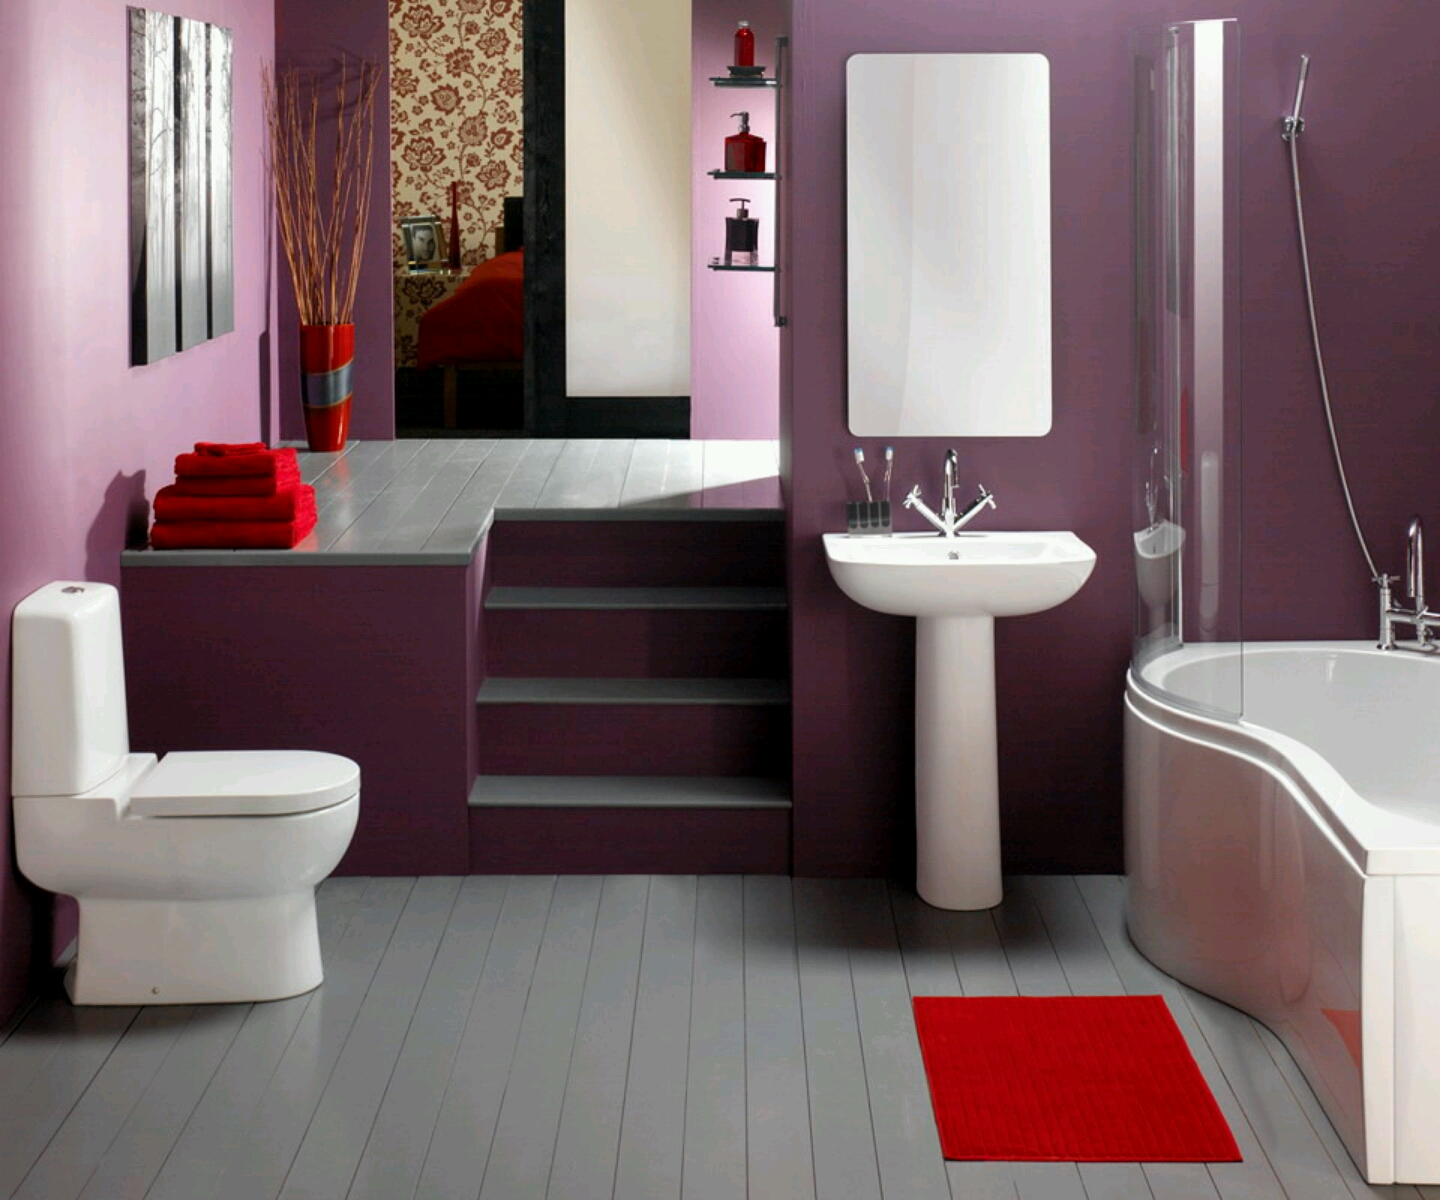 New home designs latest luxury modern bathrooms designs for Modern bathroom colors ideas photos